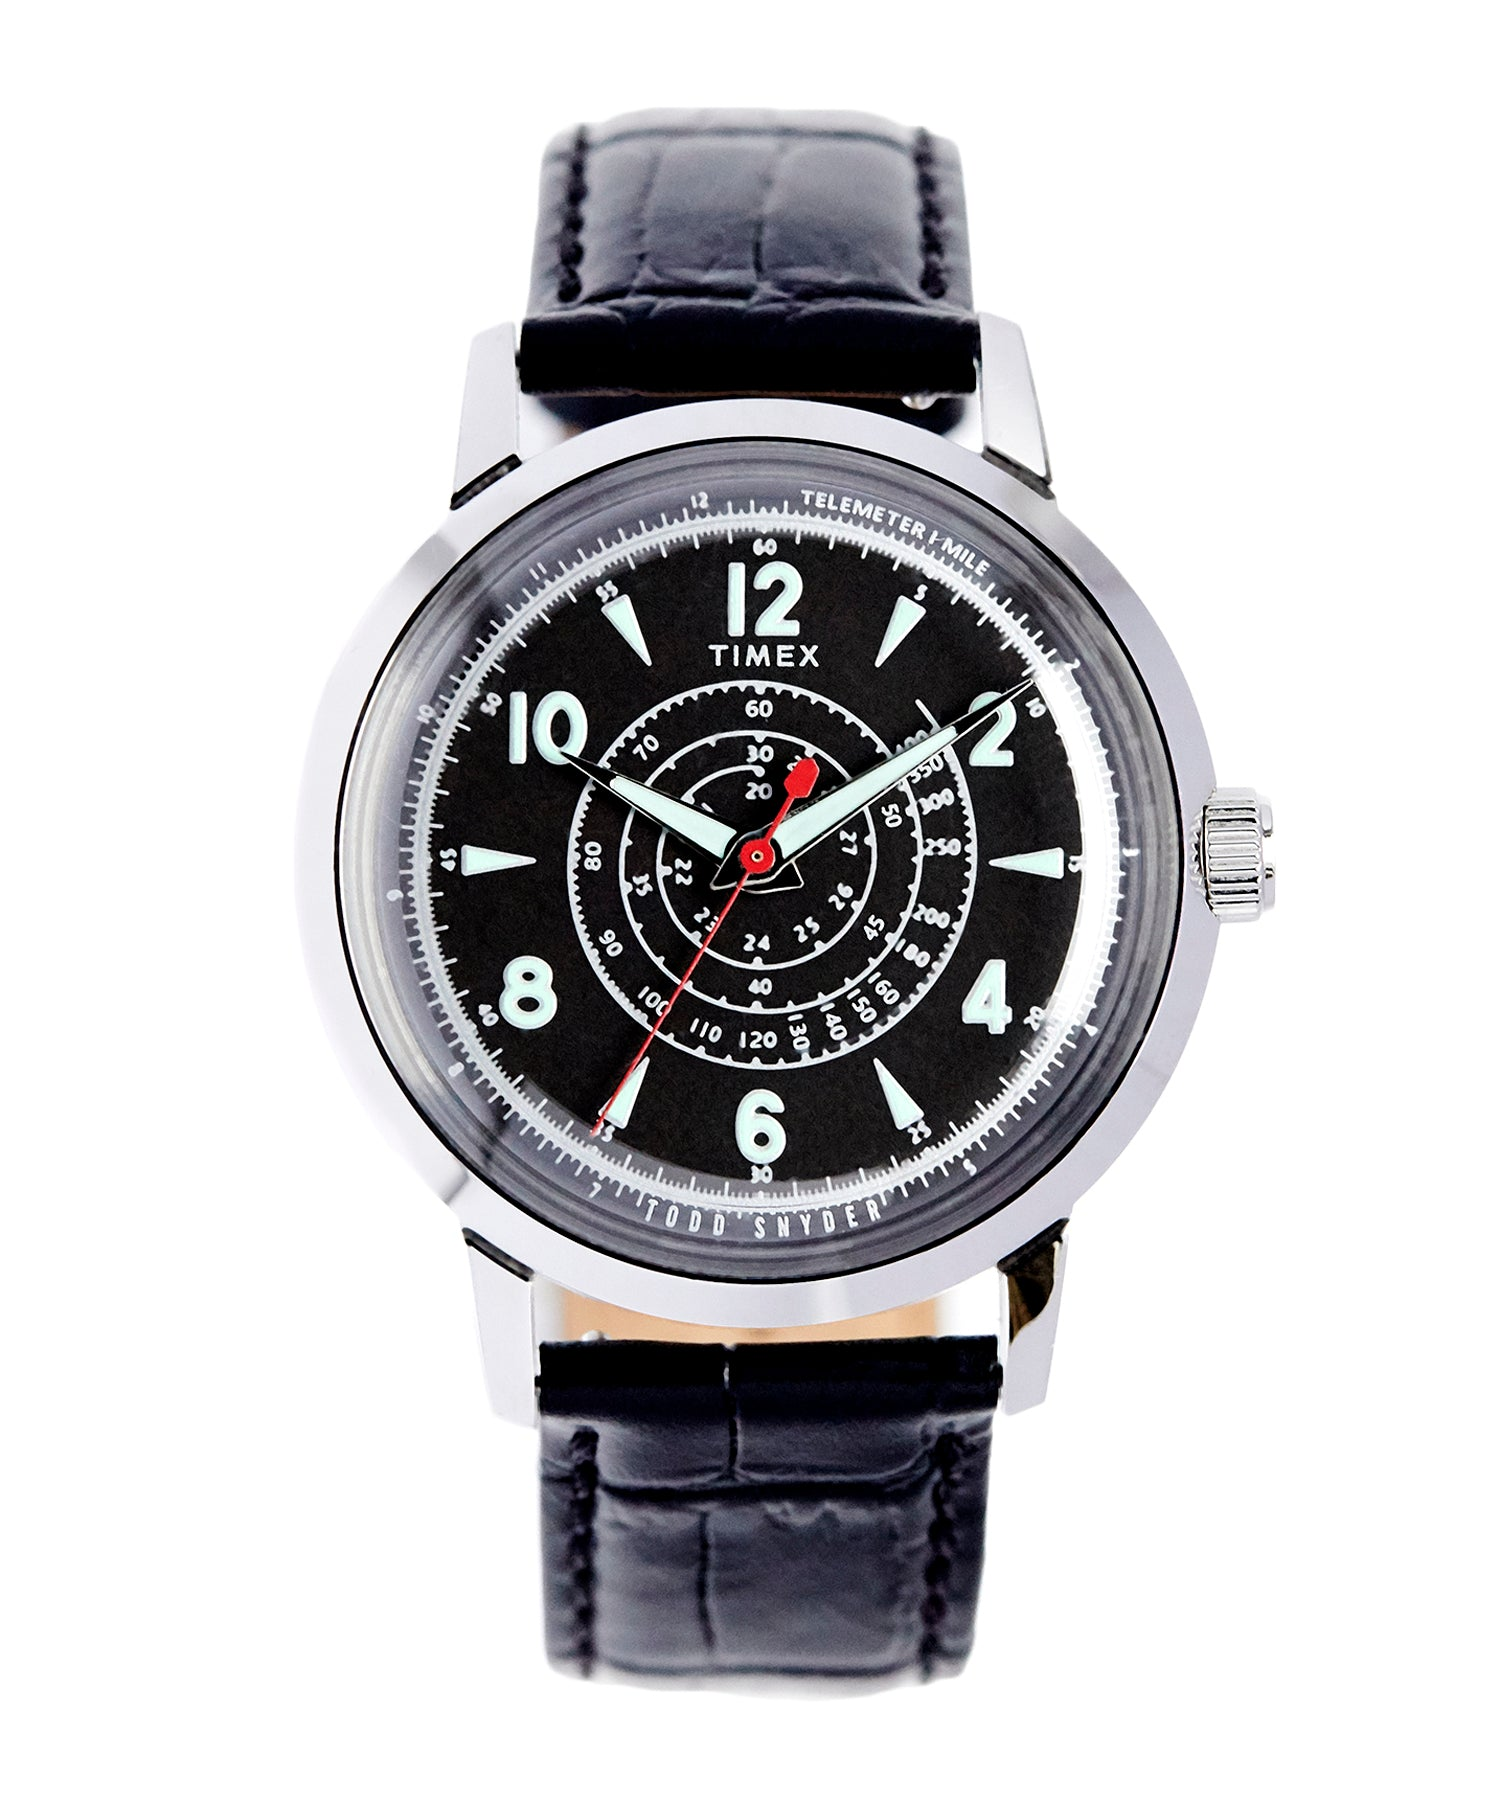 Timex + Todd Snyder Beekman Watch in Black